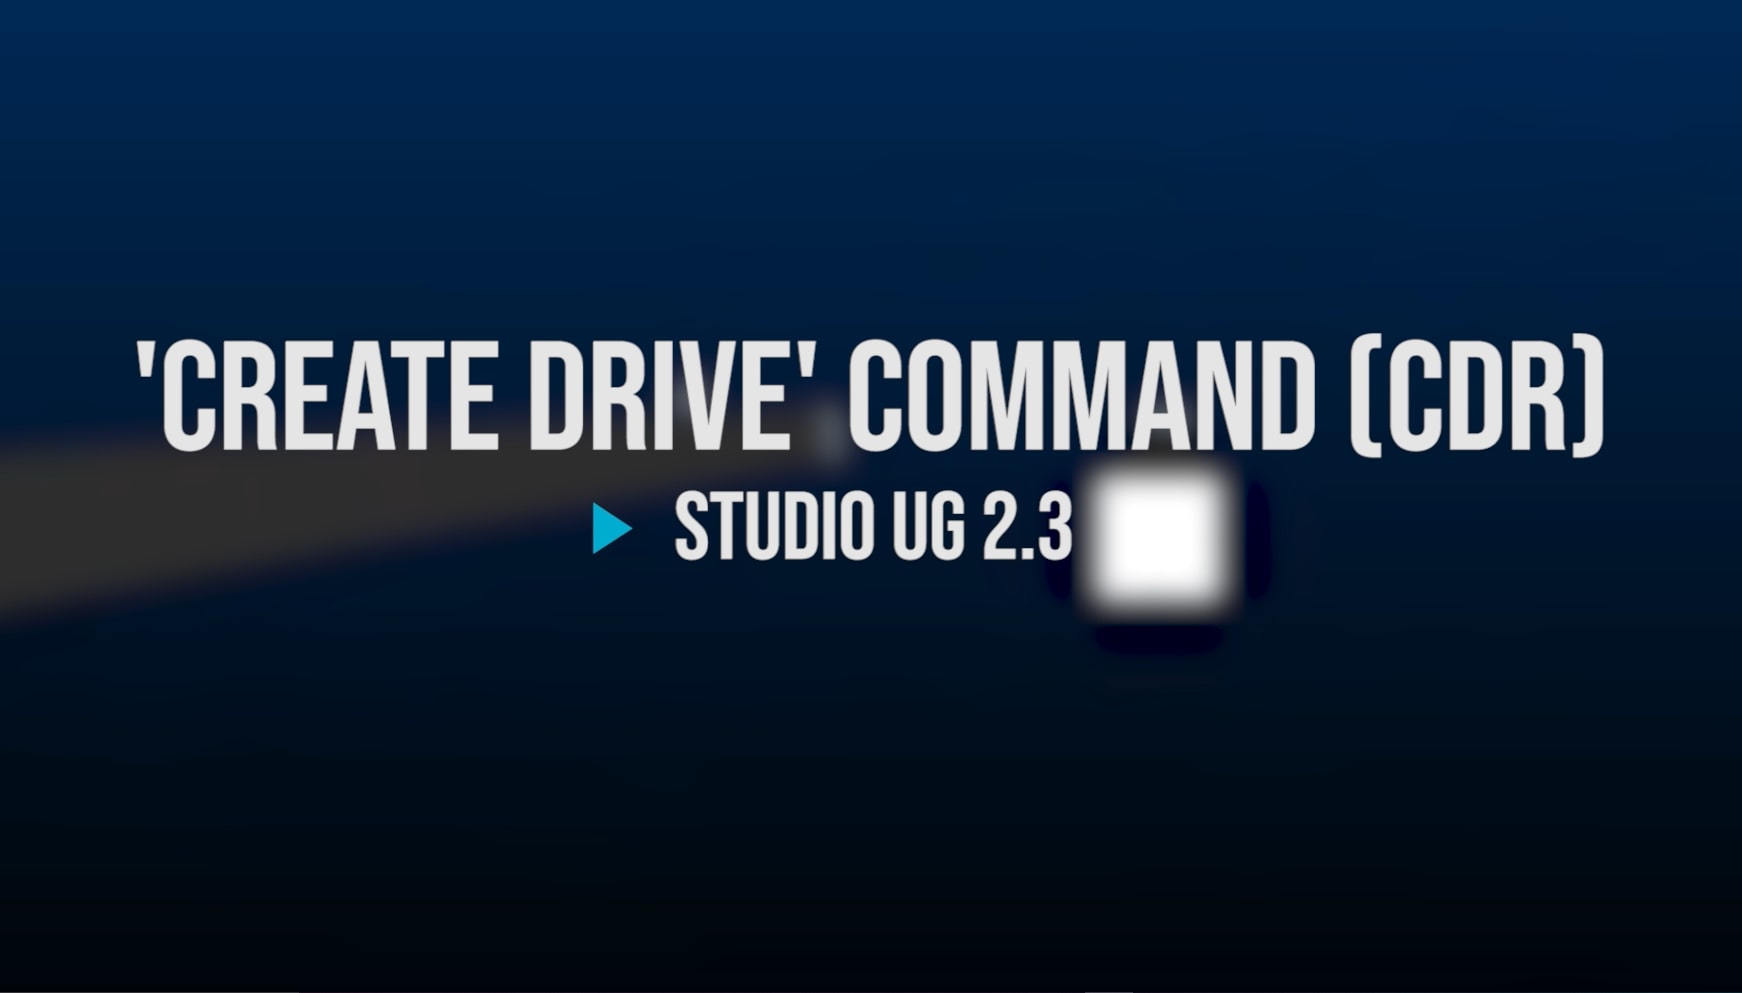 Screenshot of the title screen for the 'Create Drive' Command video